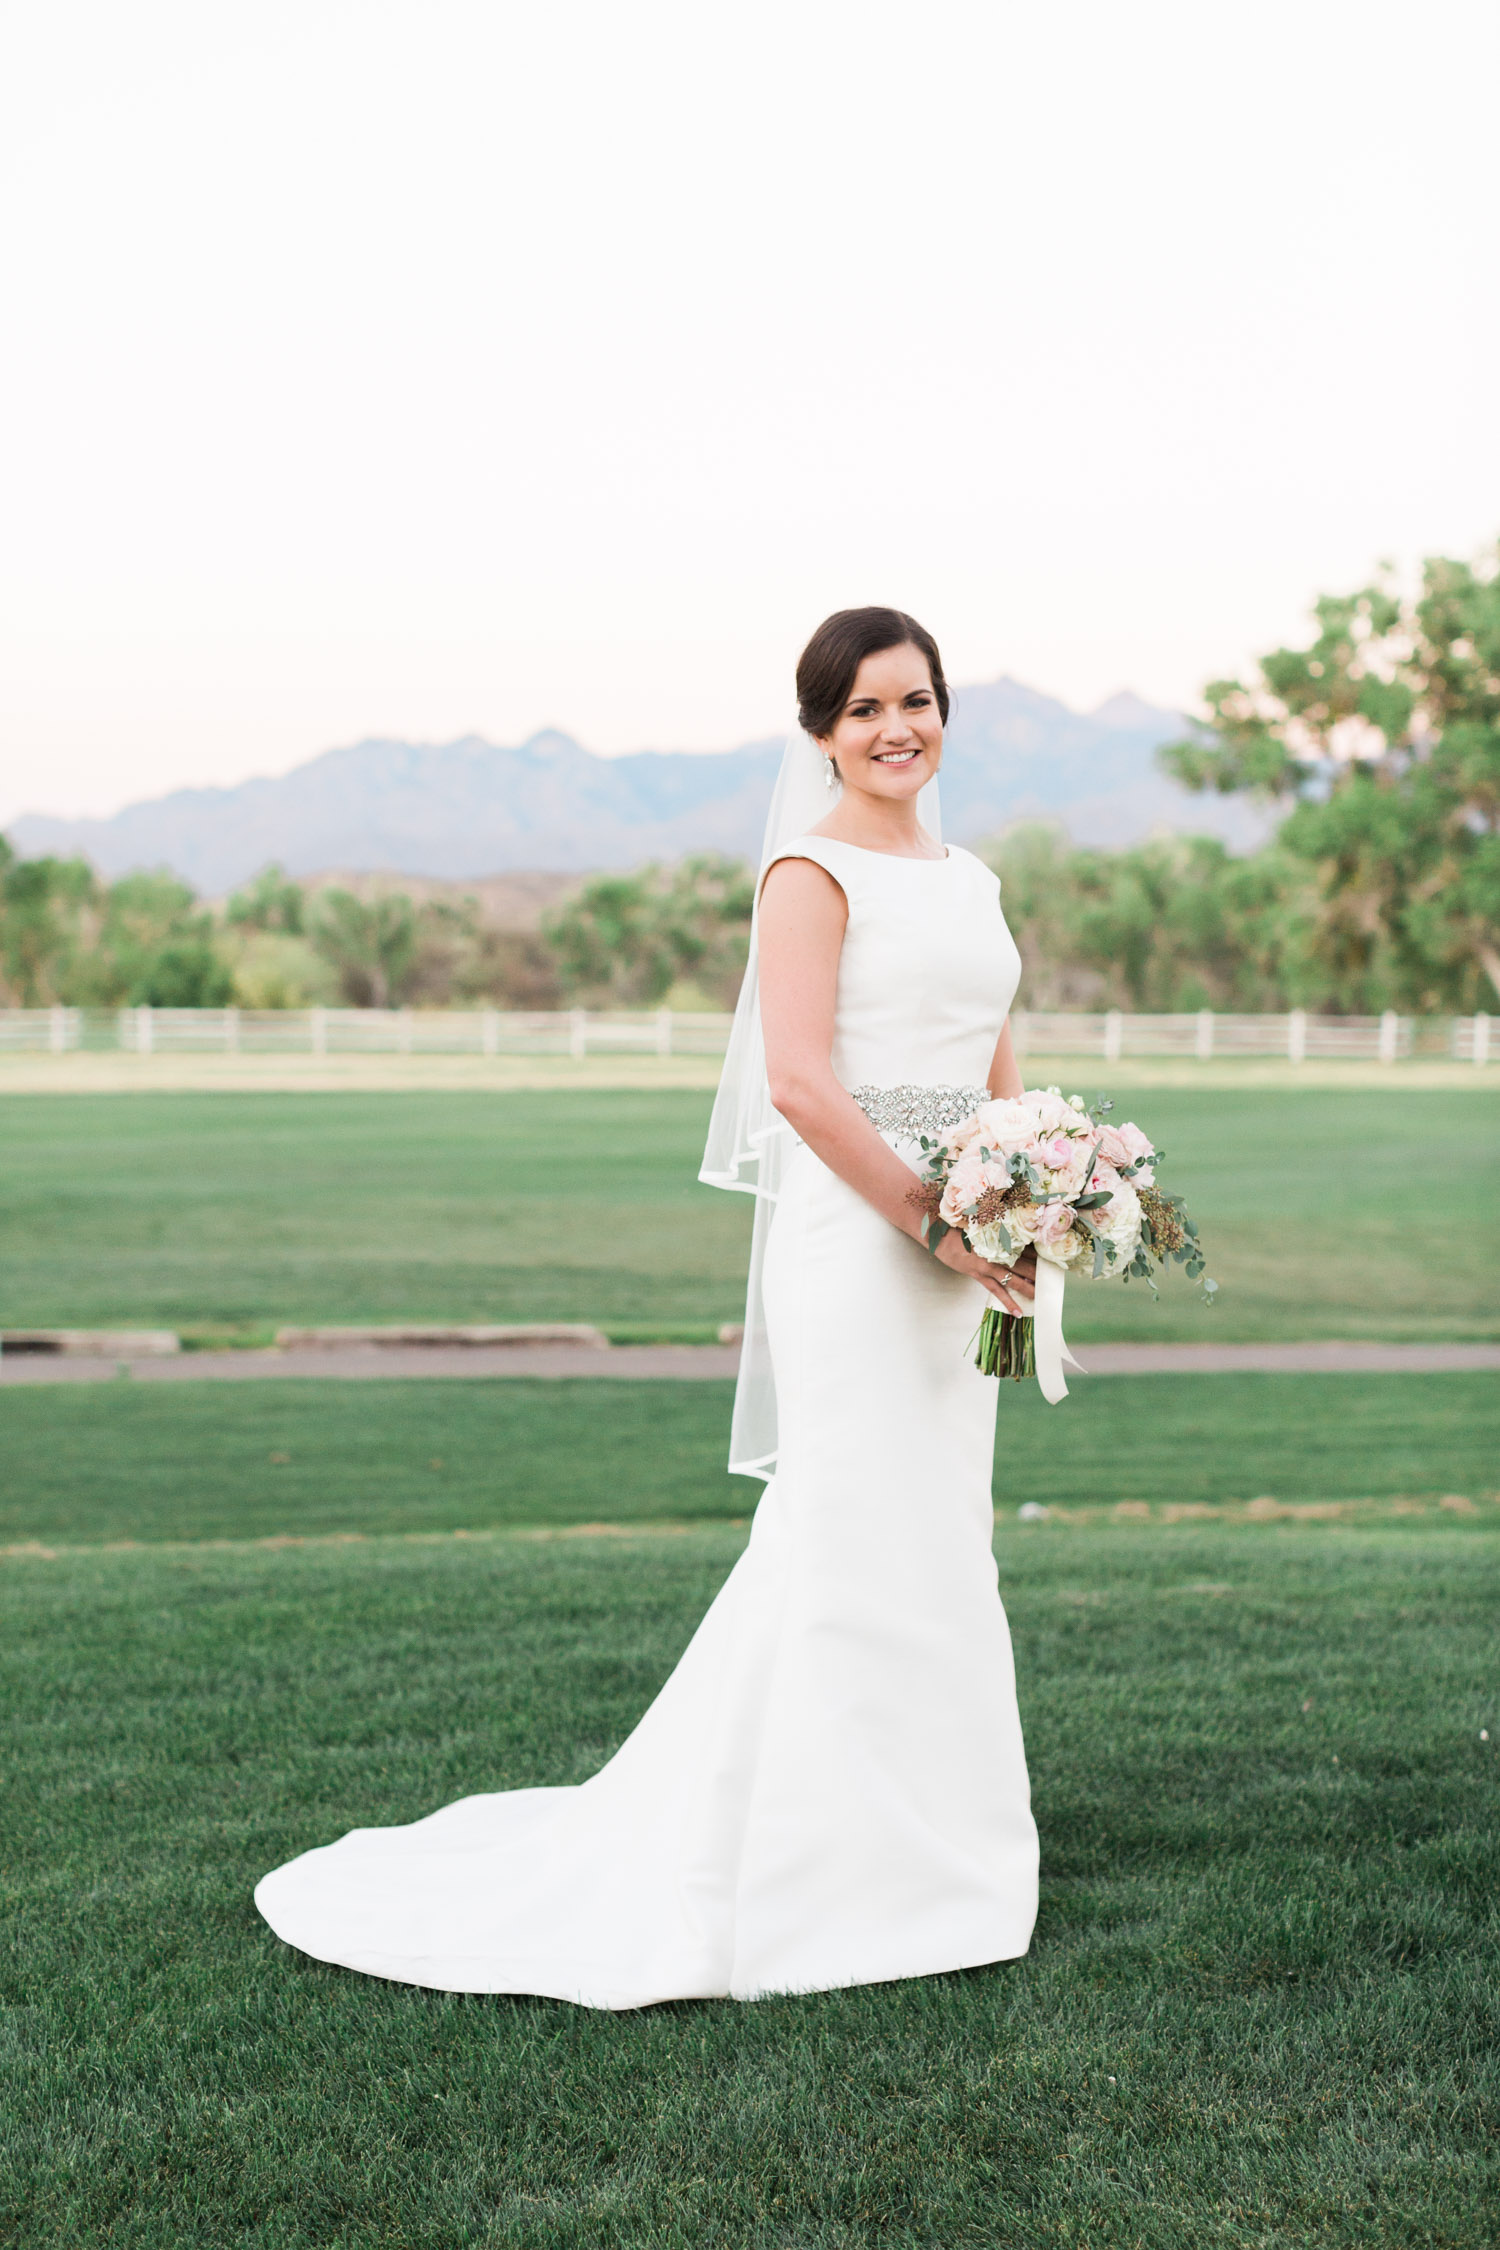 Bride wearing a fitted Pronovias gown, holding flowers with mountain views in the background